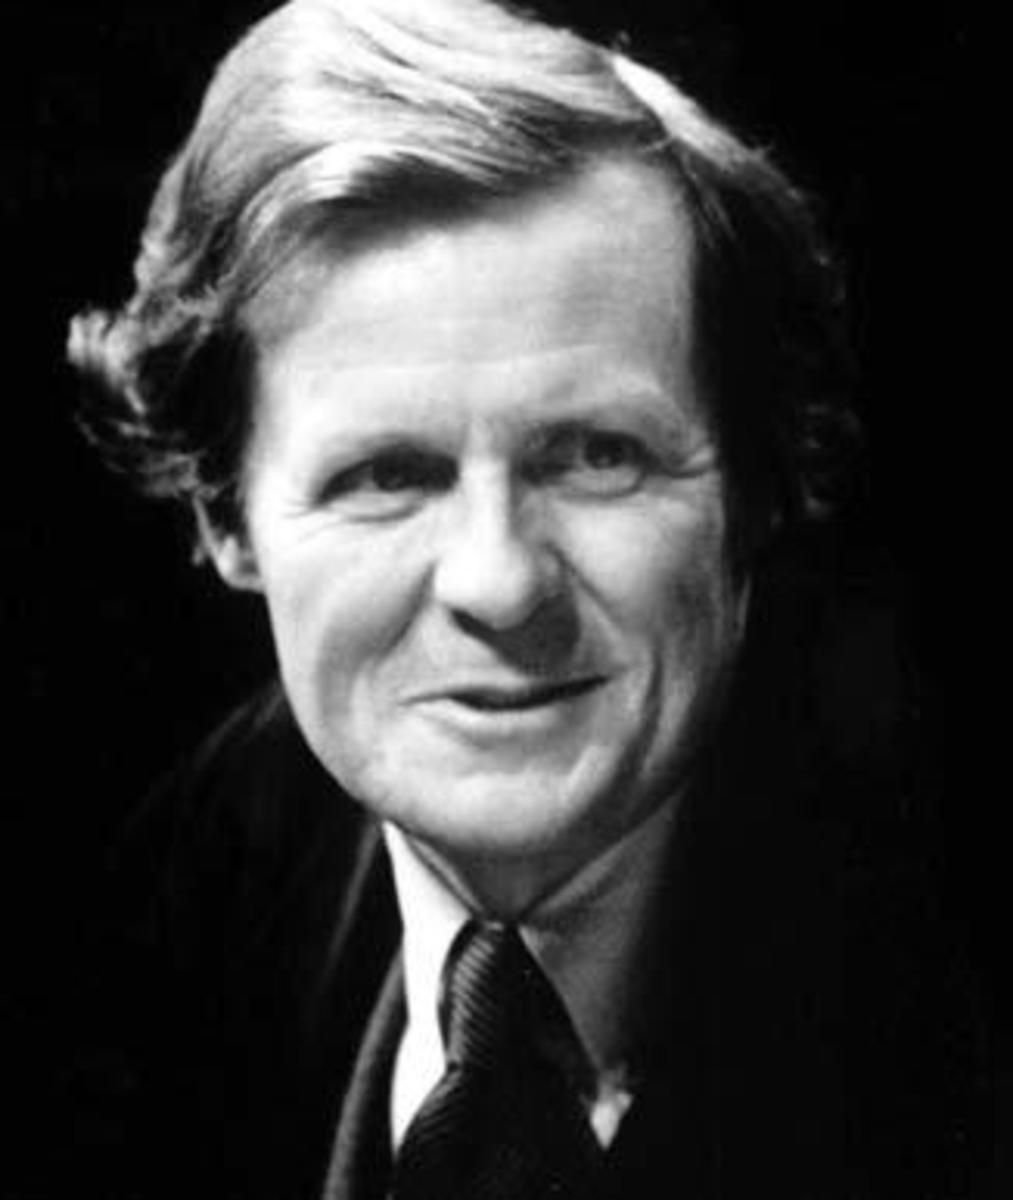 David Hare, screenwriter of The Hours (PHOTO CREDIT: Daniel Locus)